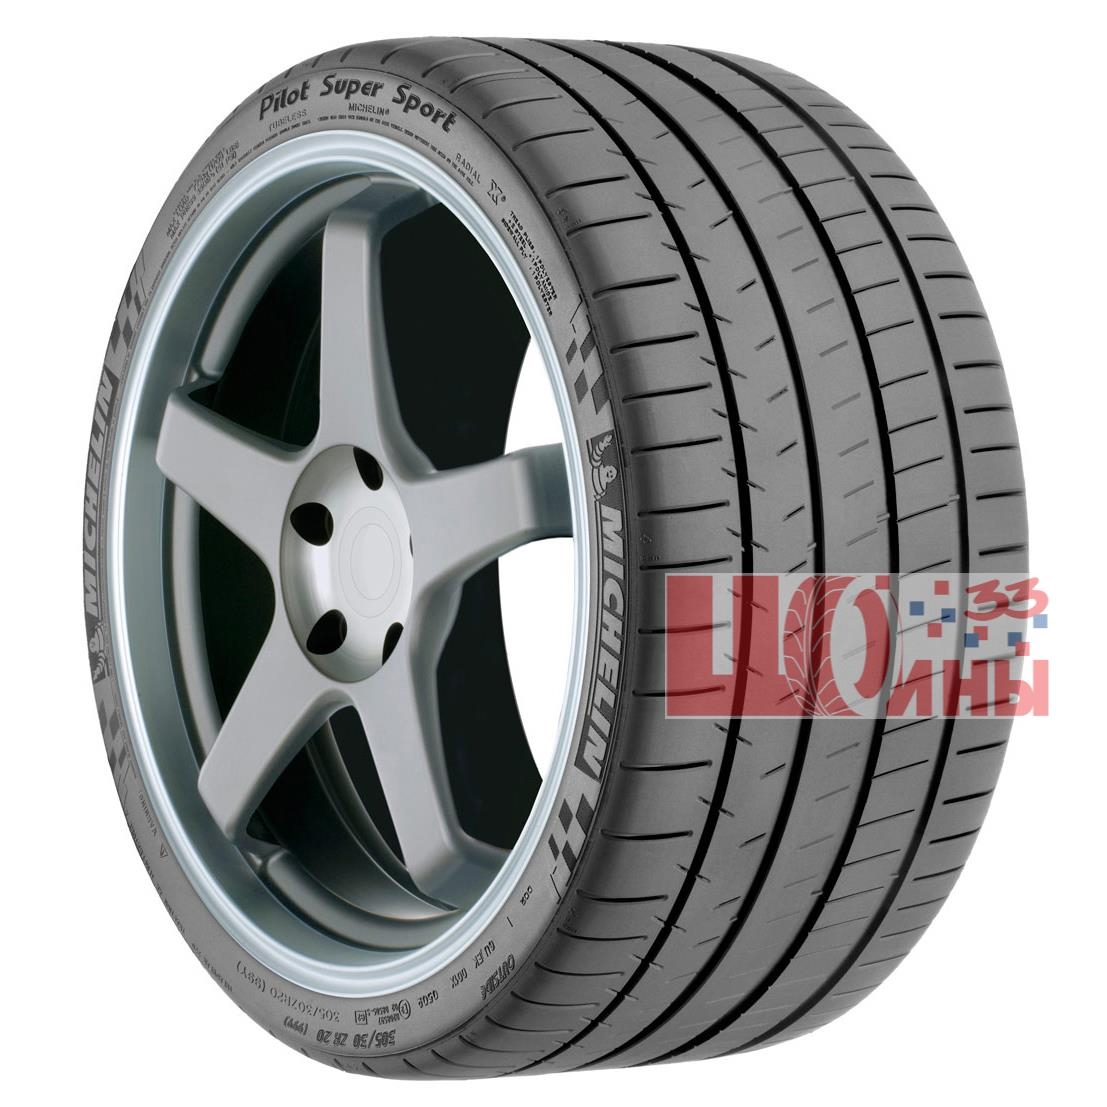 Б/У 245/35 R20 Лето MICHELIN Pilot Super Sport Кат. 2